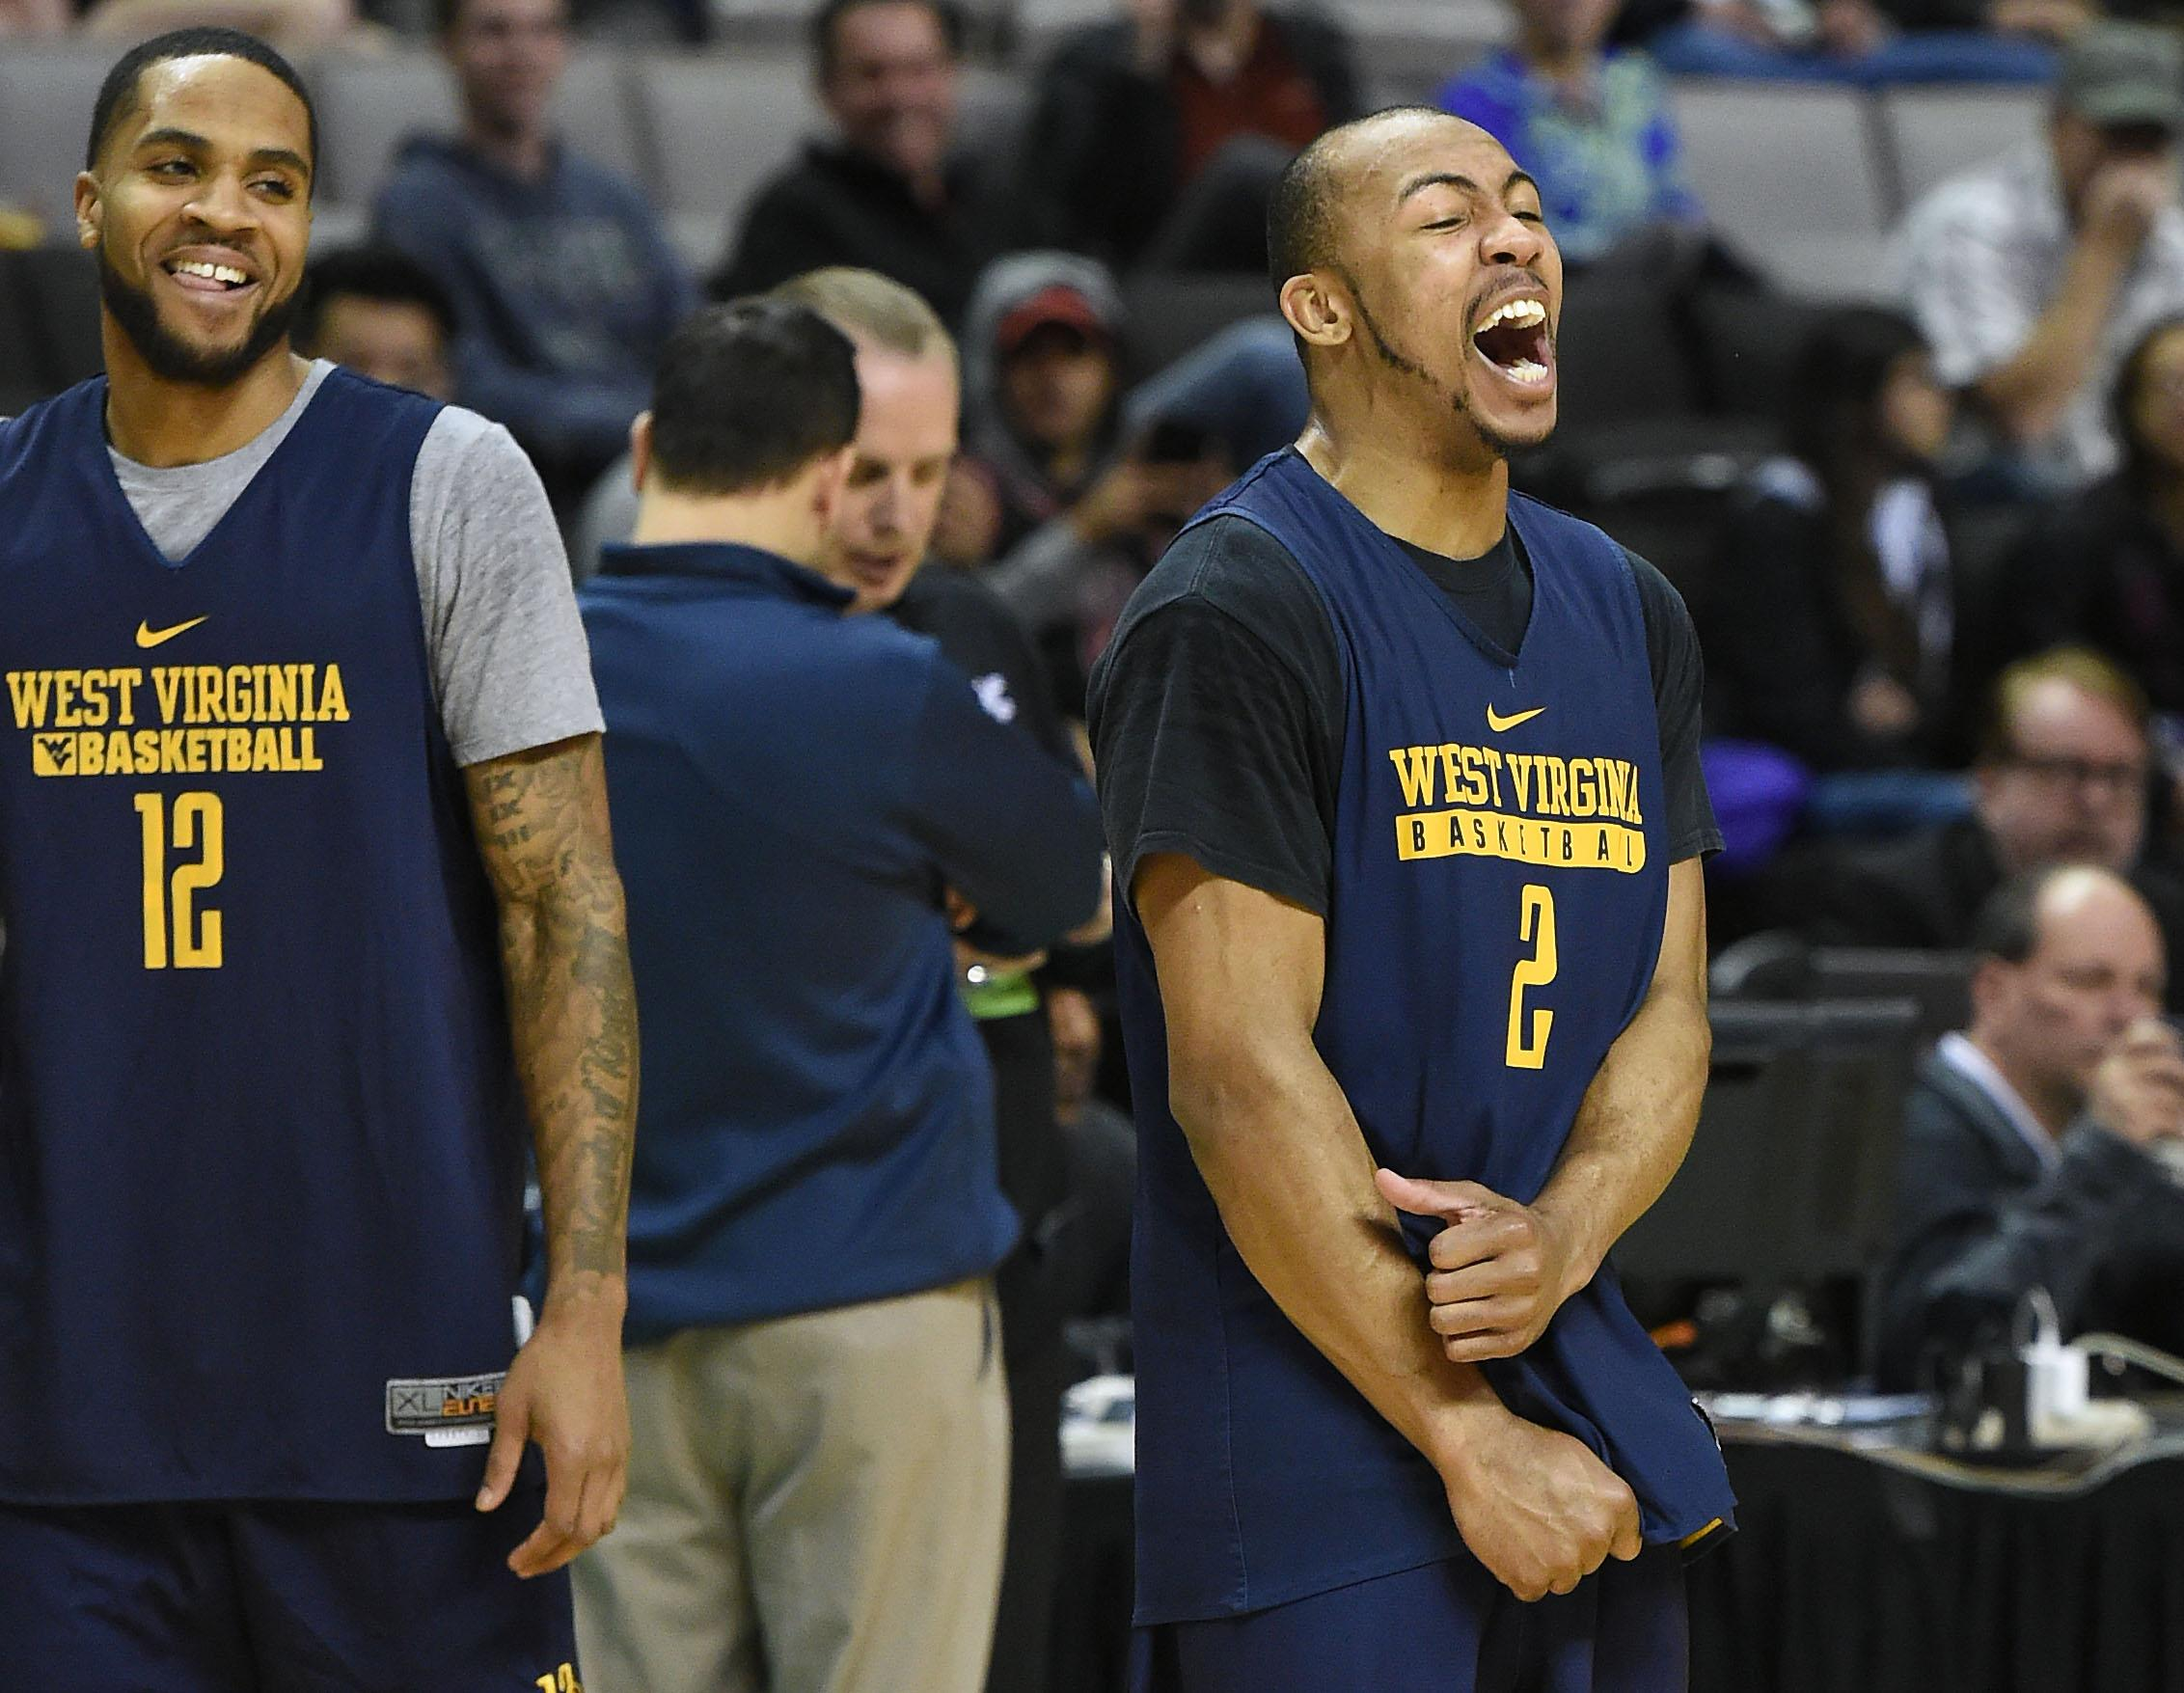 NCAA West Regional preview: Gonzaga vs. West Virginia and Xavier vs. Arizona